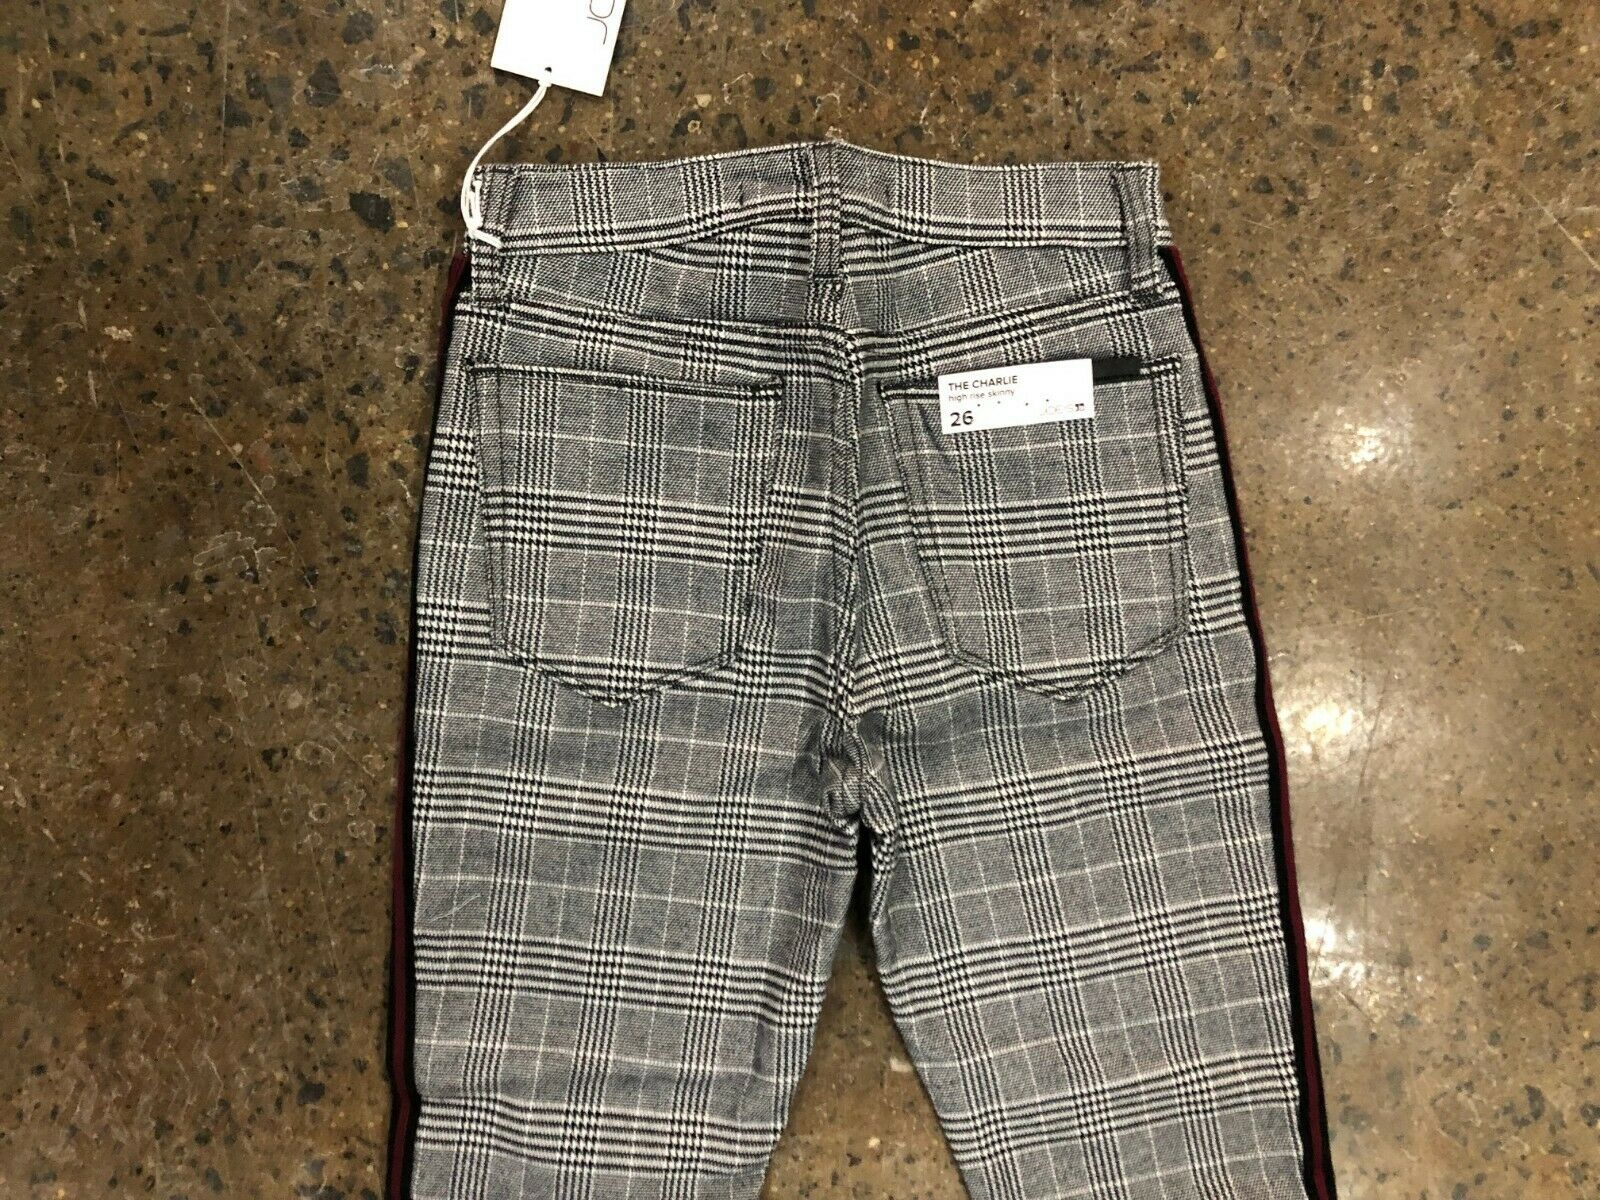 NWT Women's JOE'S JEANS CHARLIE SKINNY ANKLE GLEN PLAID SIZE 26 299  HIGH RISE